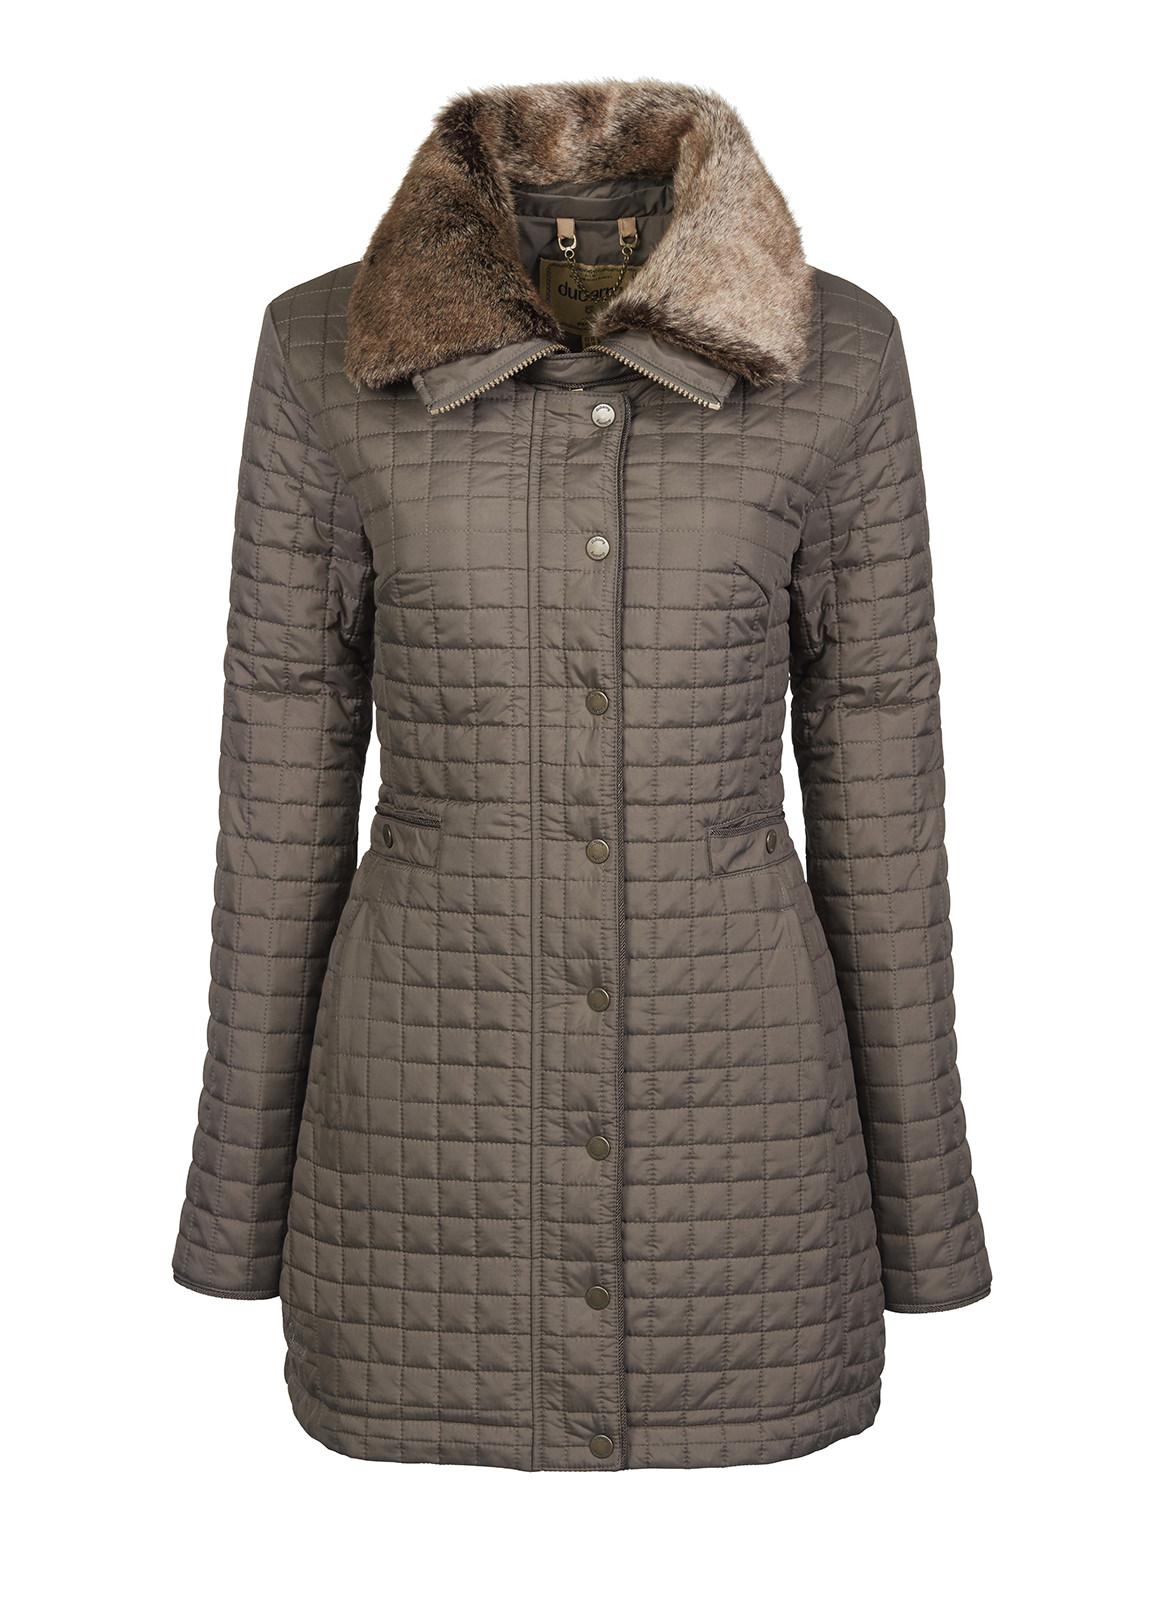 Dubarry_ Abbey Women's Quilted Jacket - Smoke_Image_2